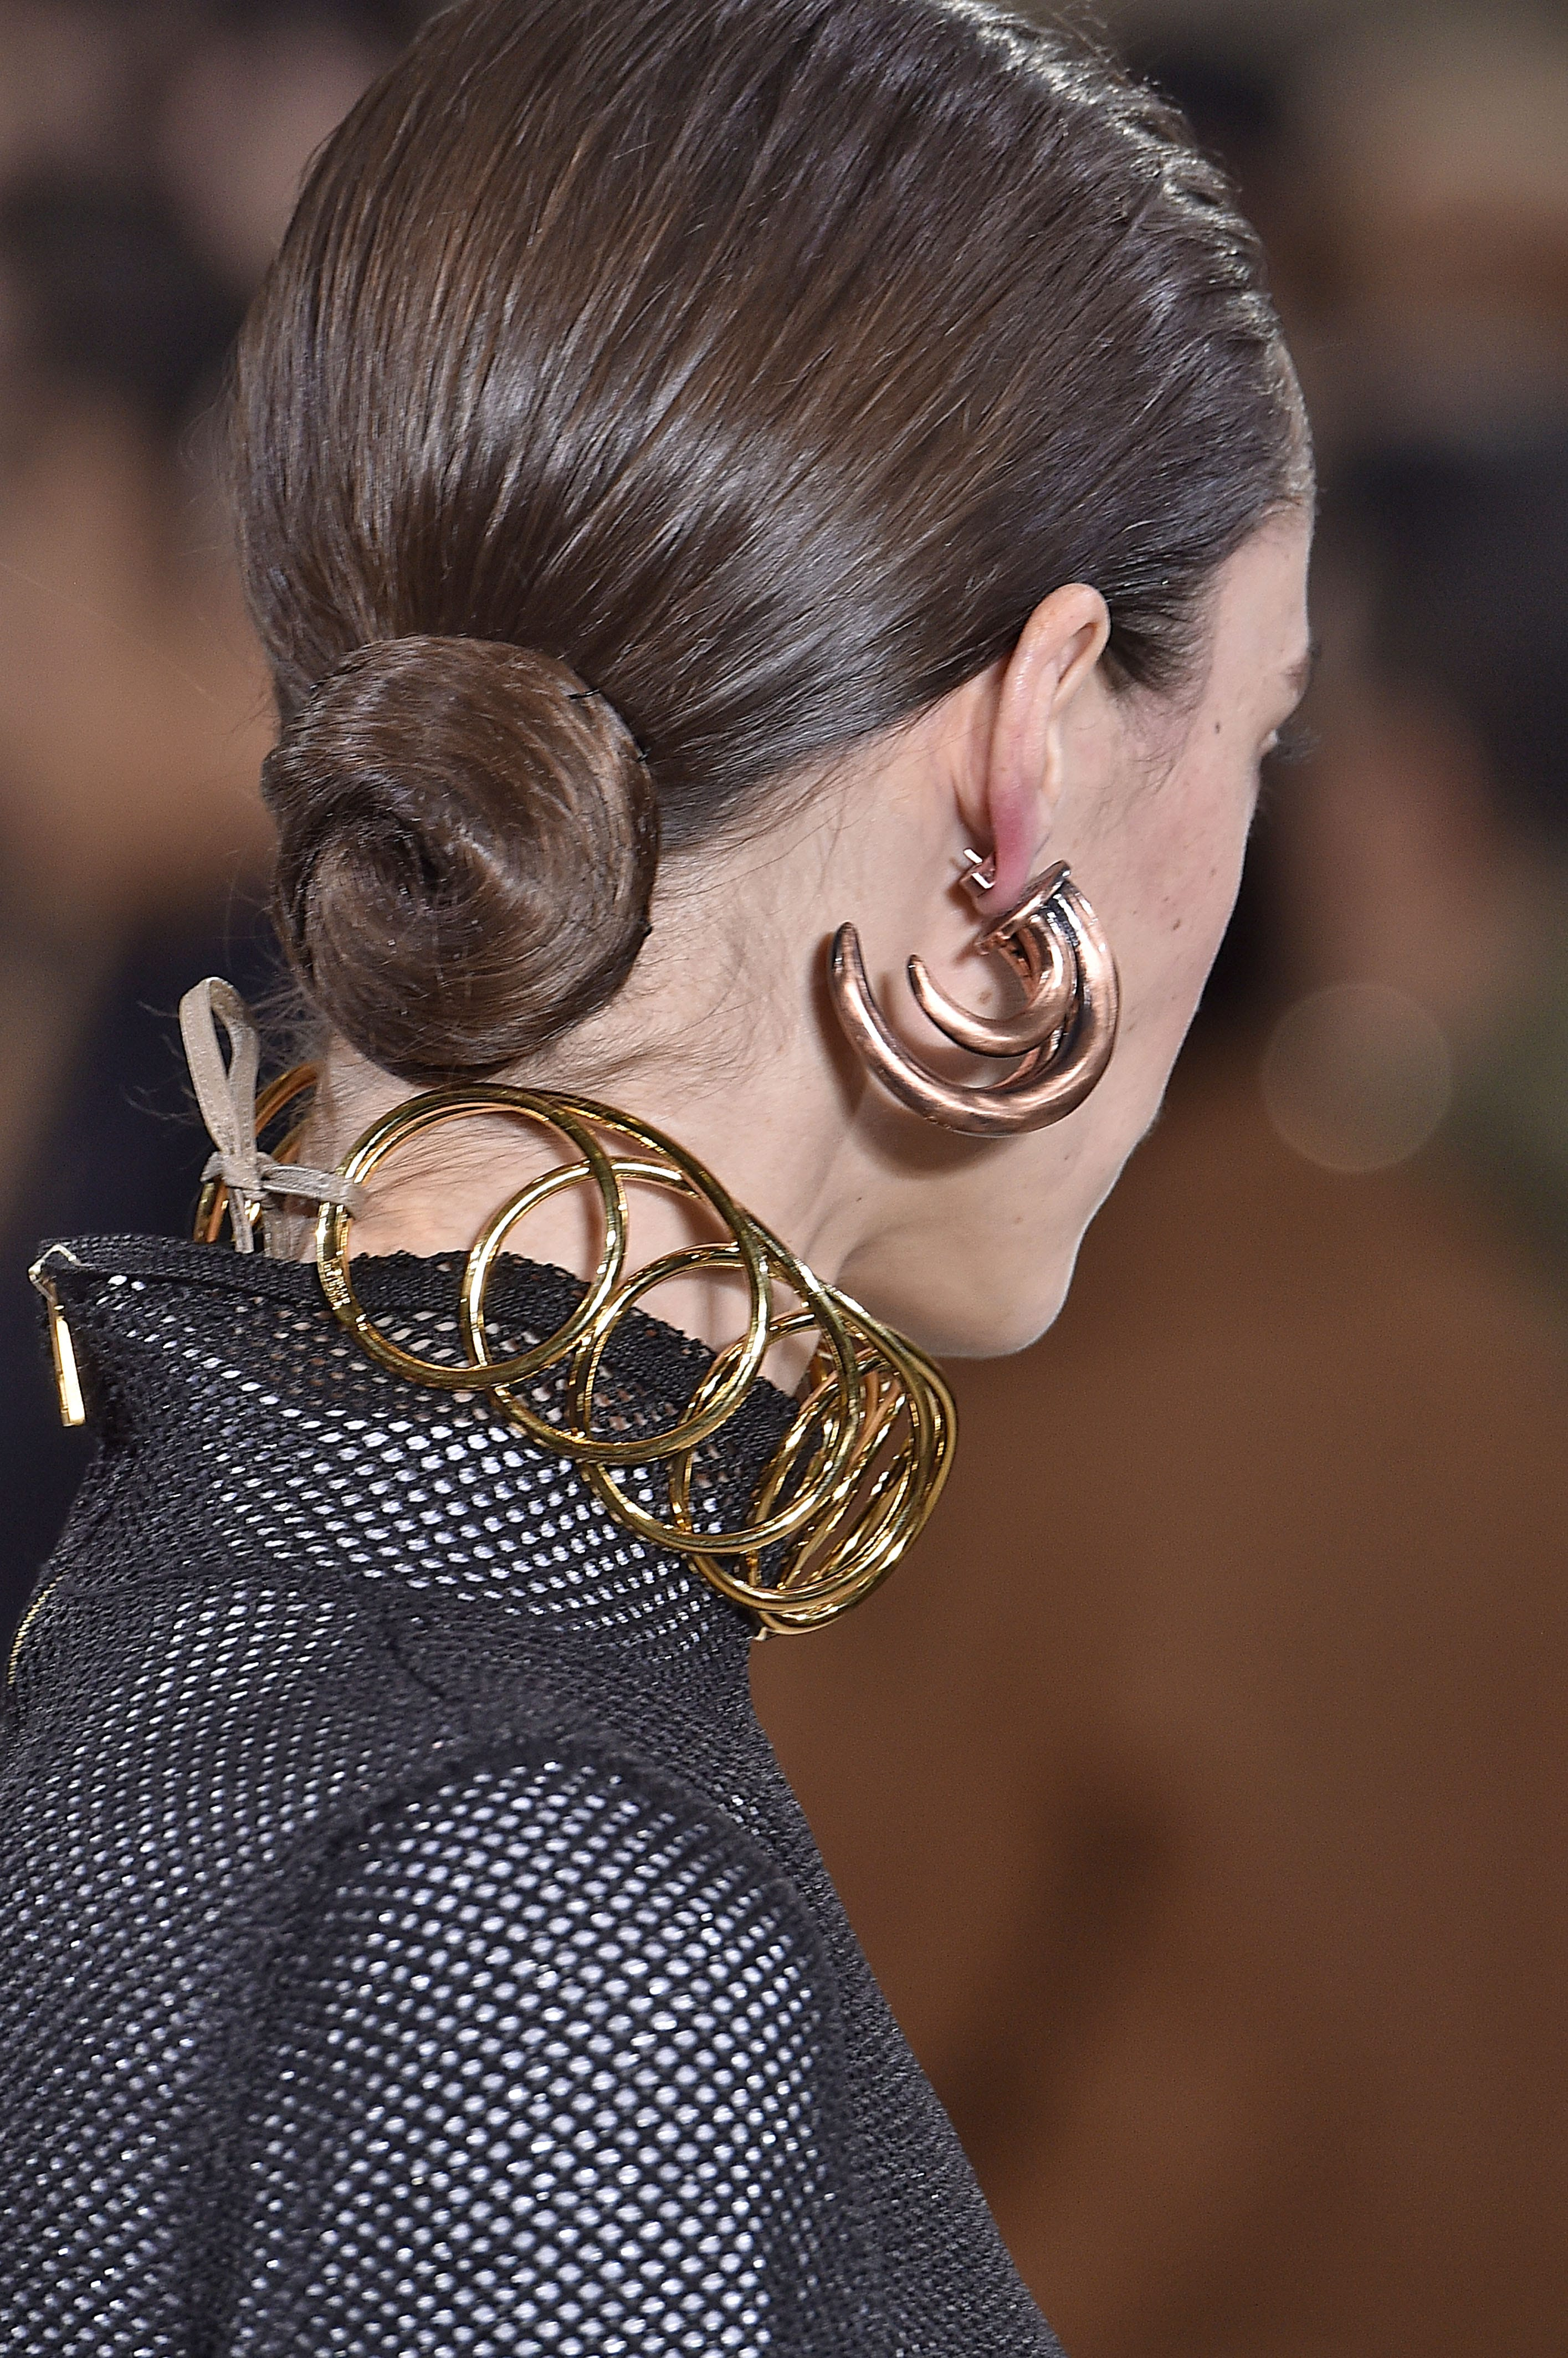 bun hairstyles: model with medium brown hair styled in a wet look low twisted bun hairstyle with large gold earrings and necklace